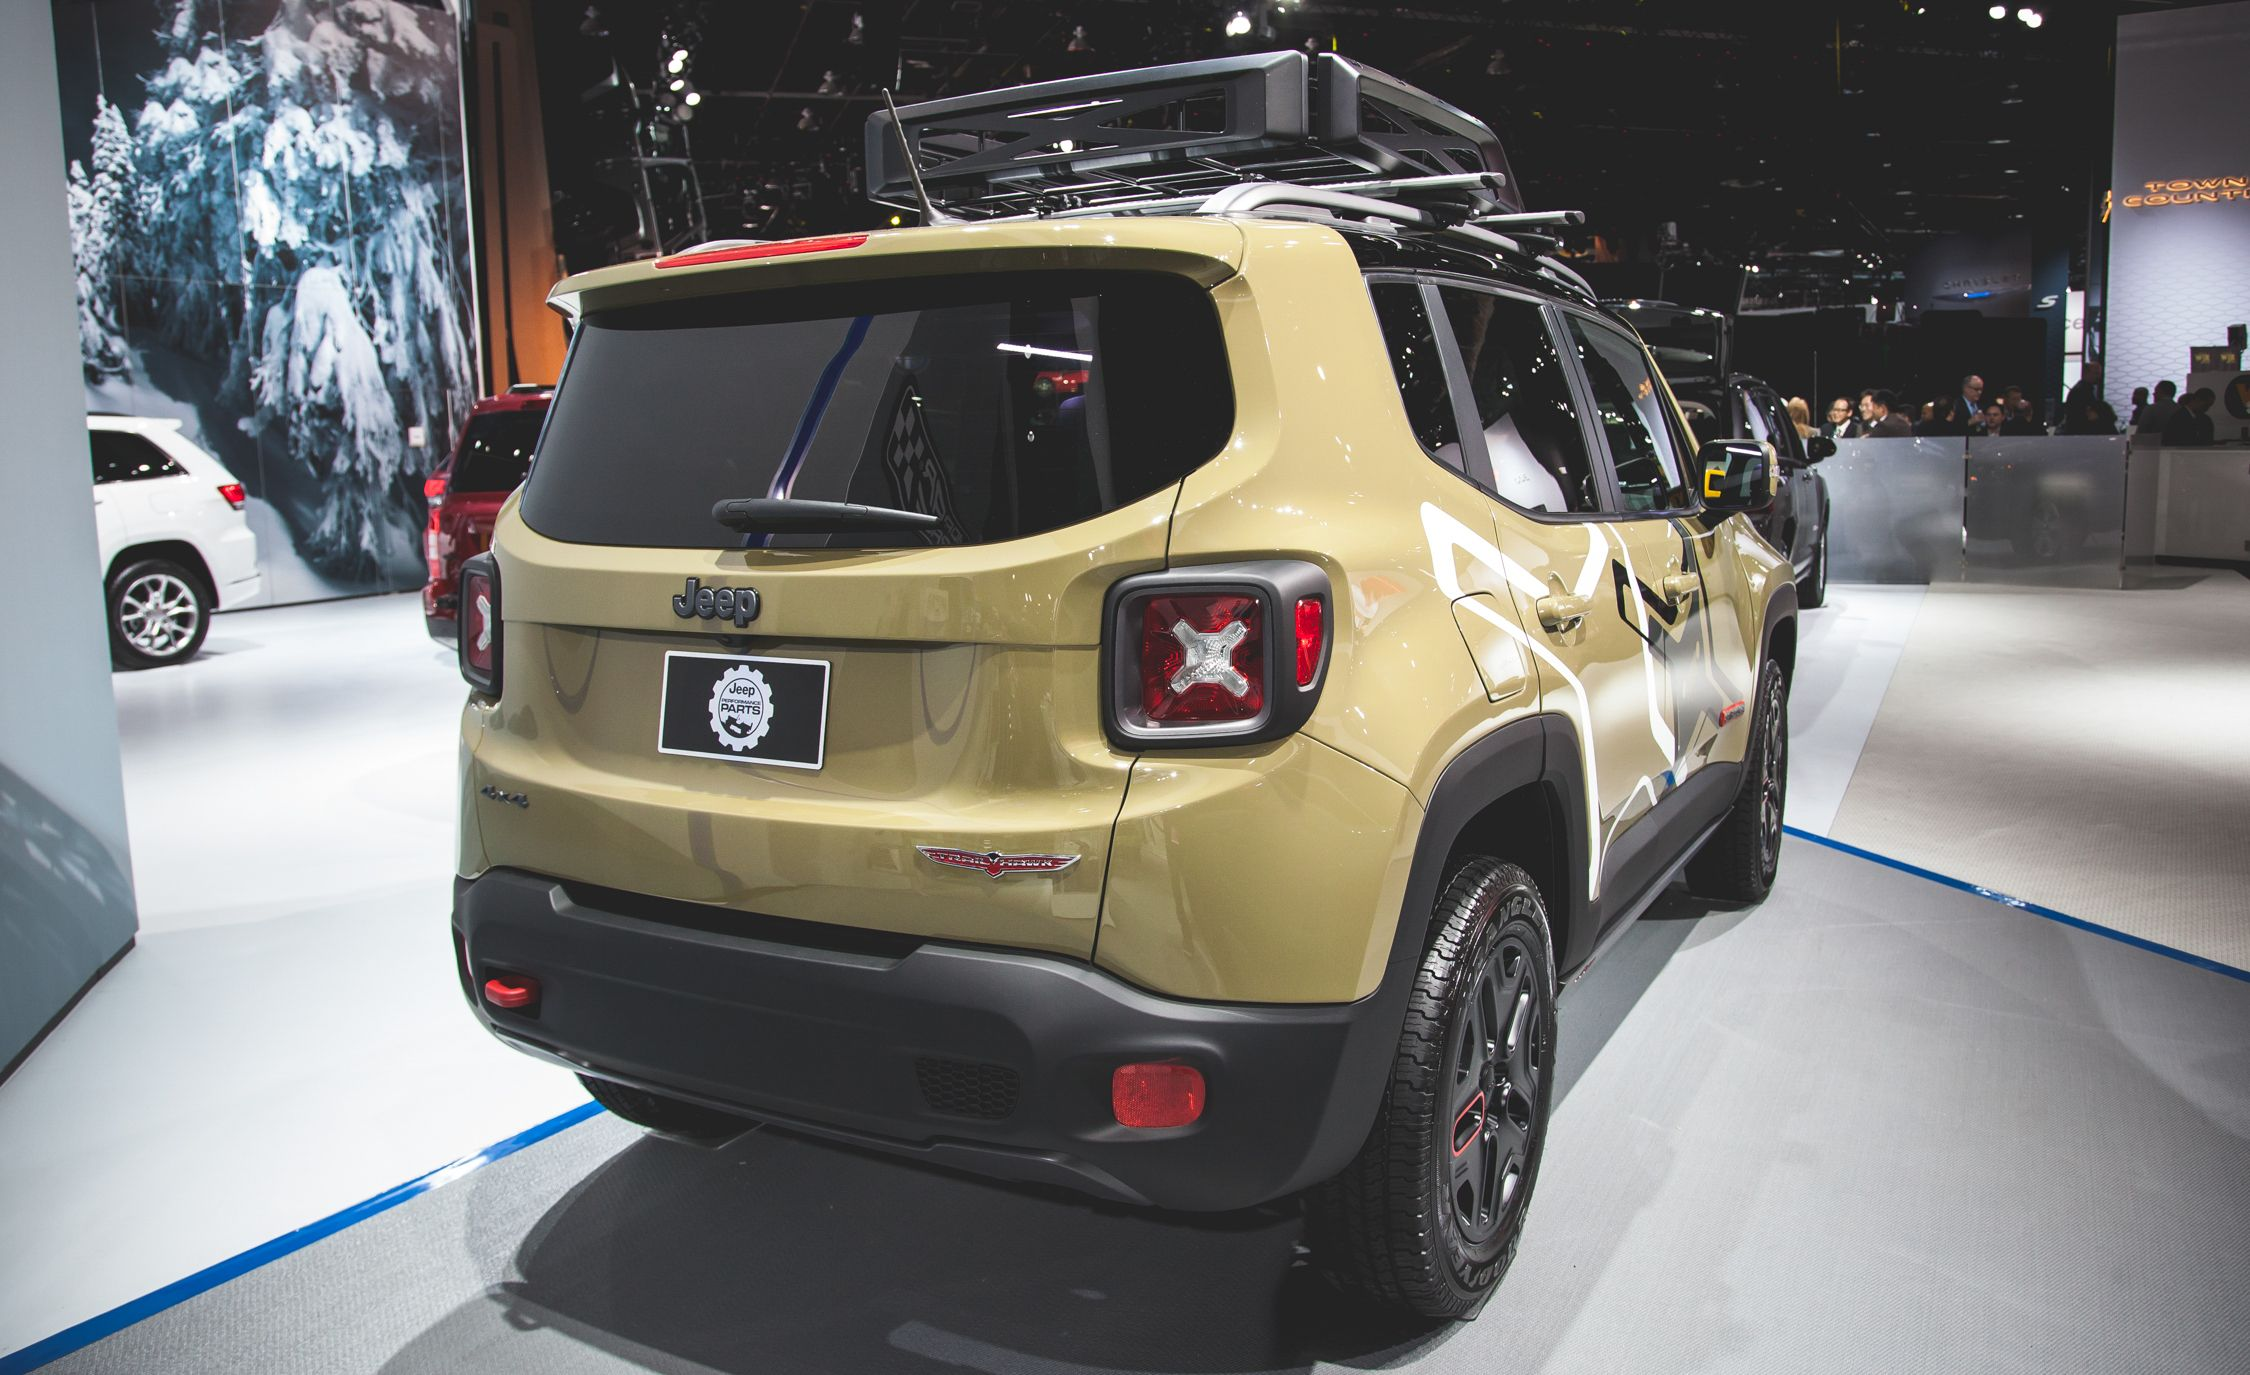 Connu 2015 Jeep Renegade Pictures | Photo Gallery | Car and Driver QR21